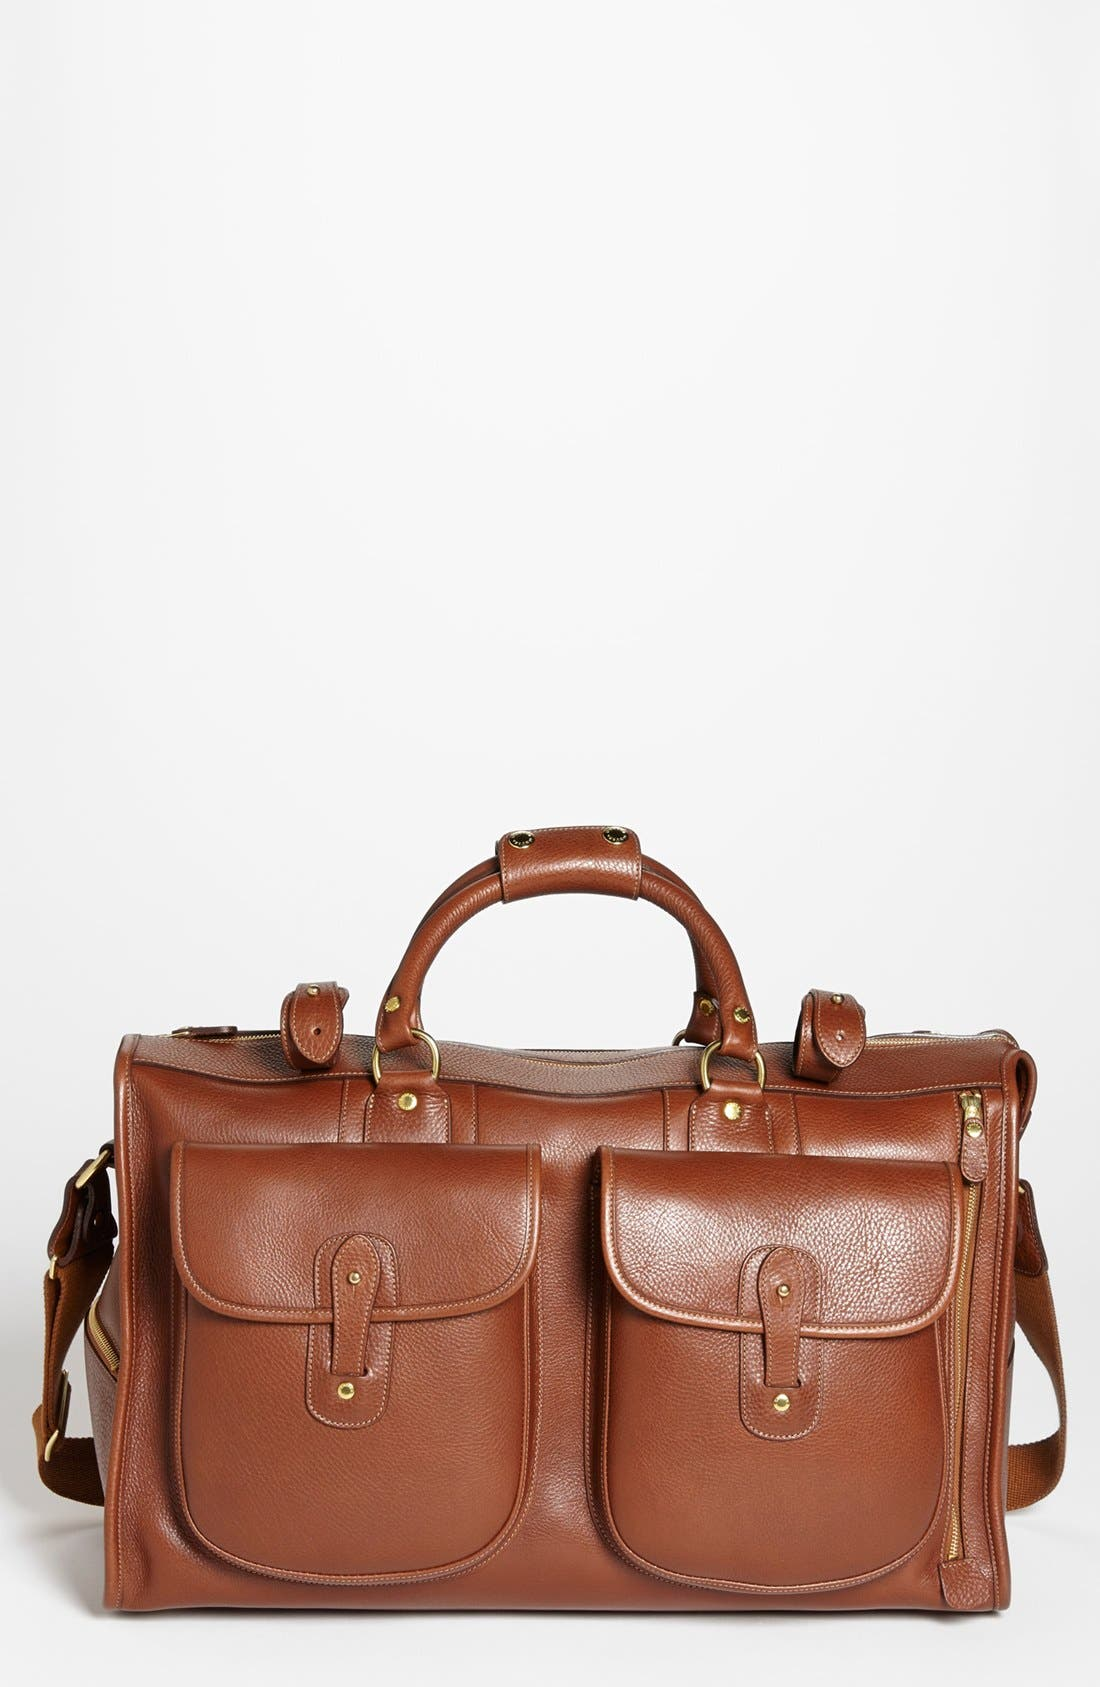 Main Image - Ghurka 'Express' Leather  Bag